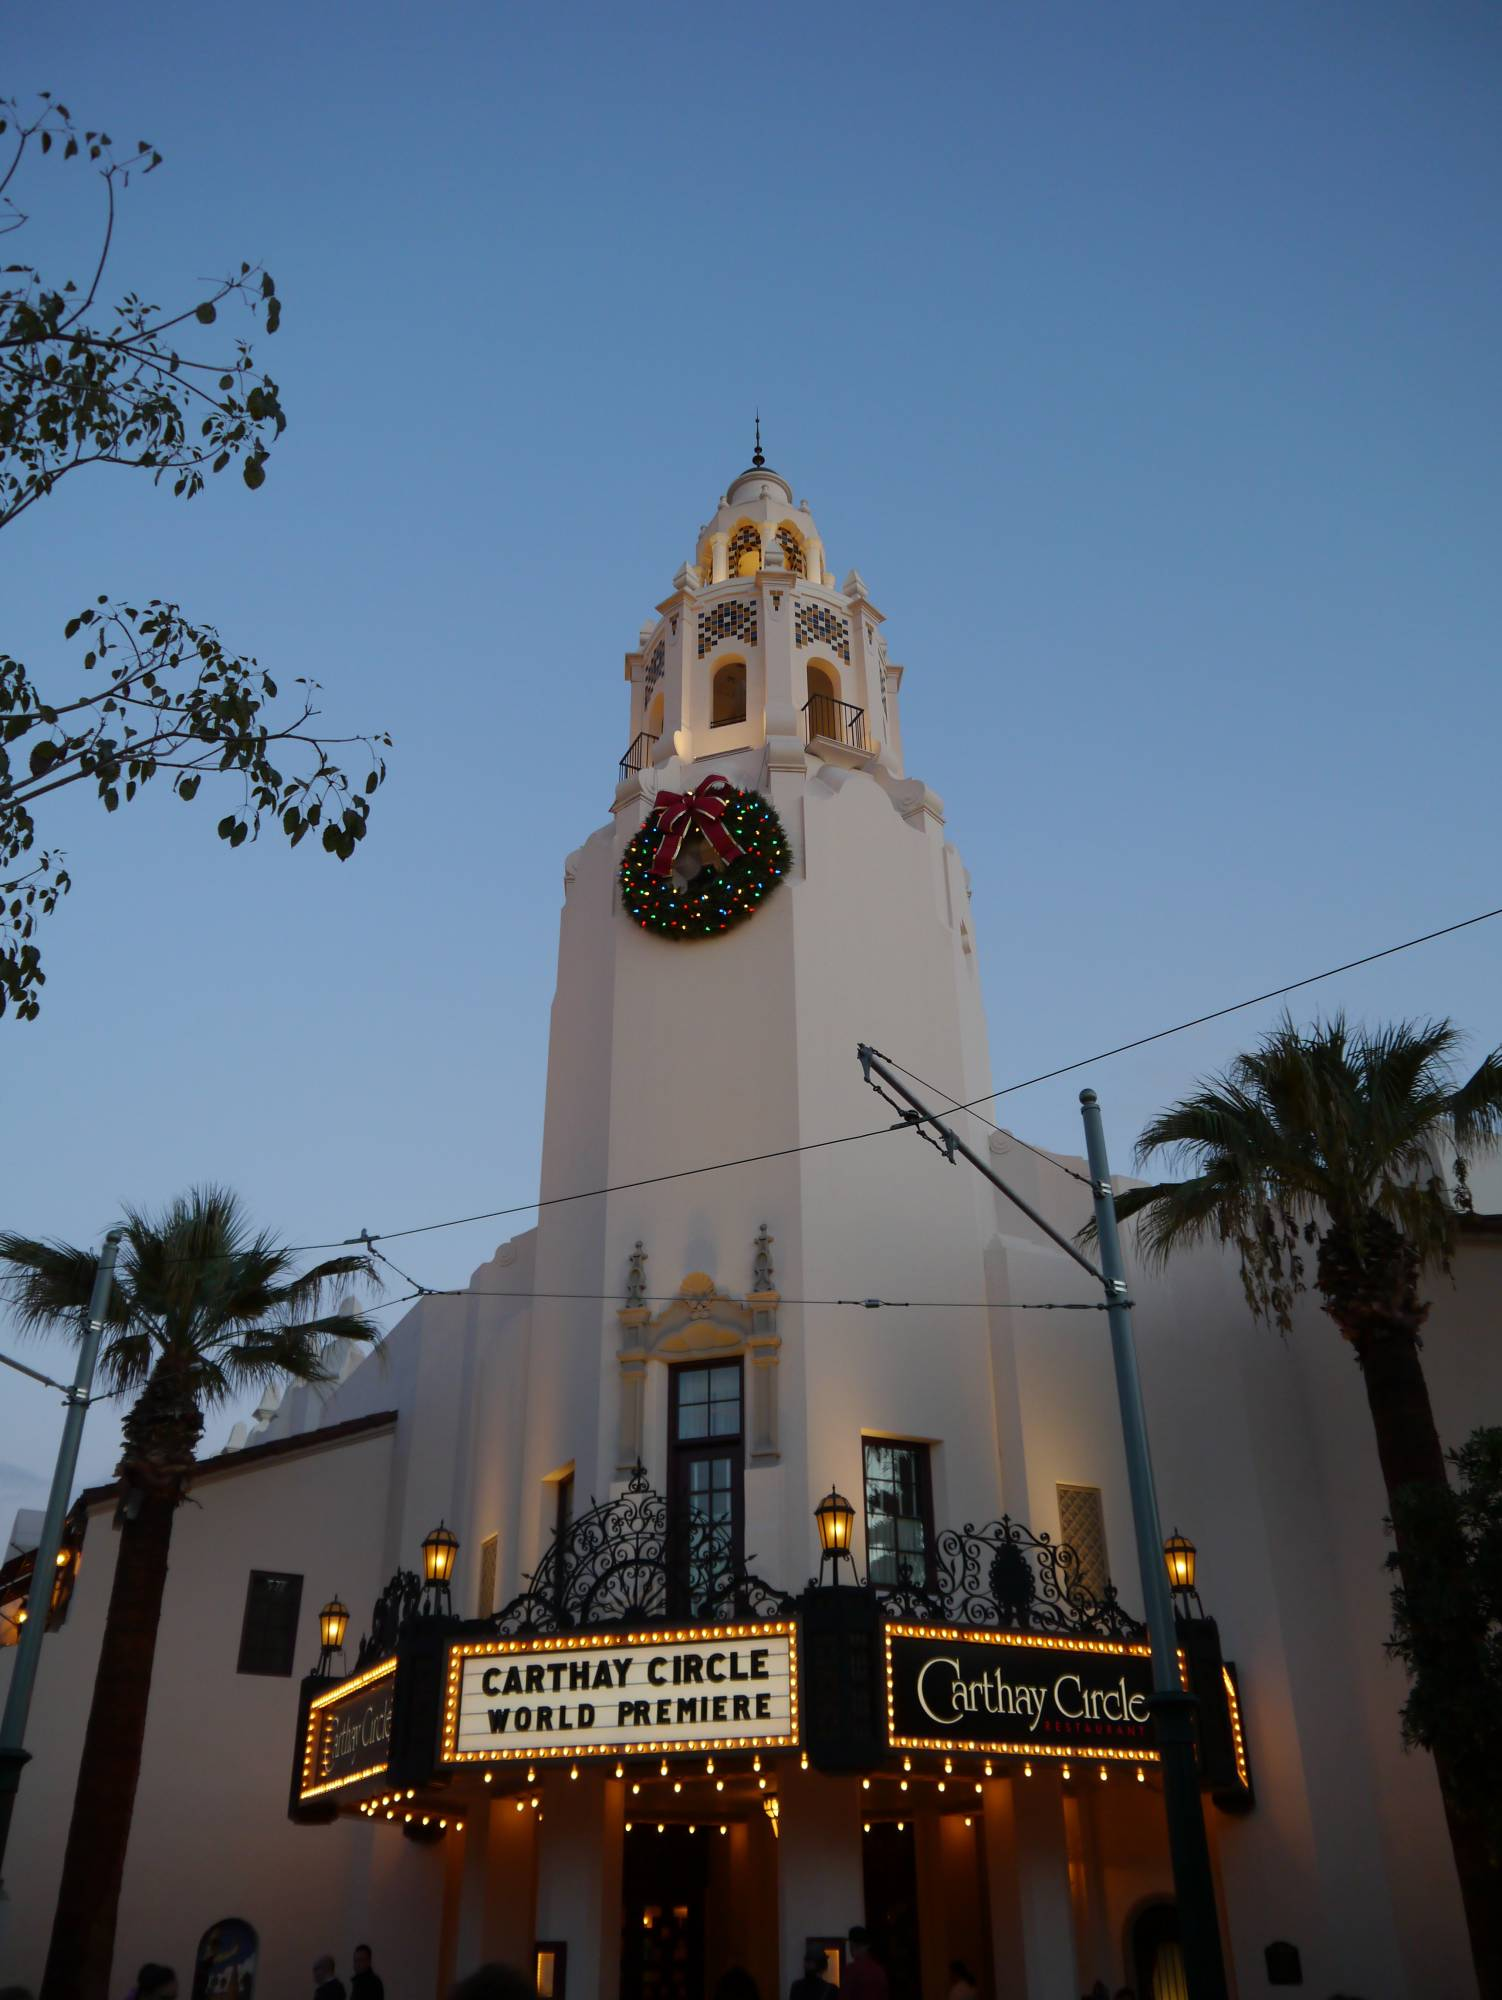 Enjoy an incredible meal surrounded by Disney history at Carthay Circle |PassPorter.com